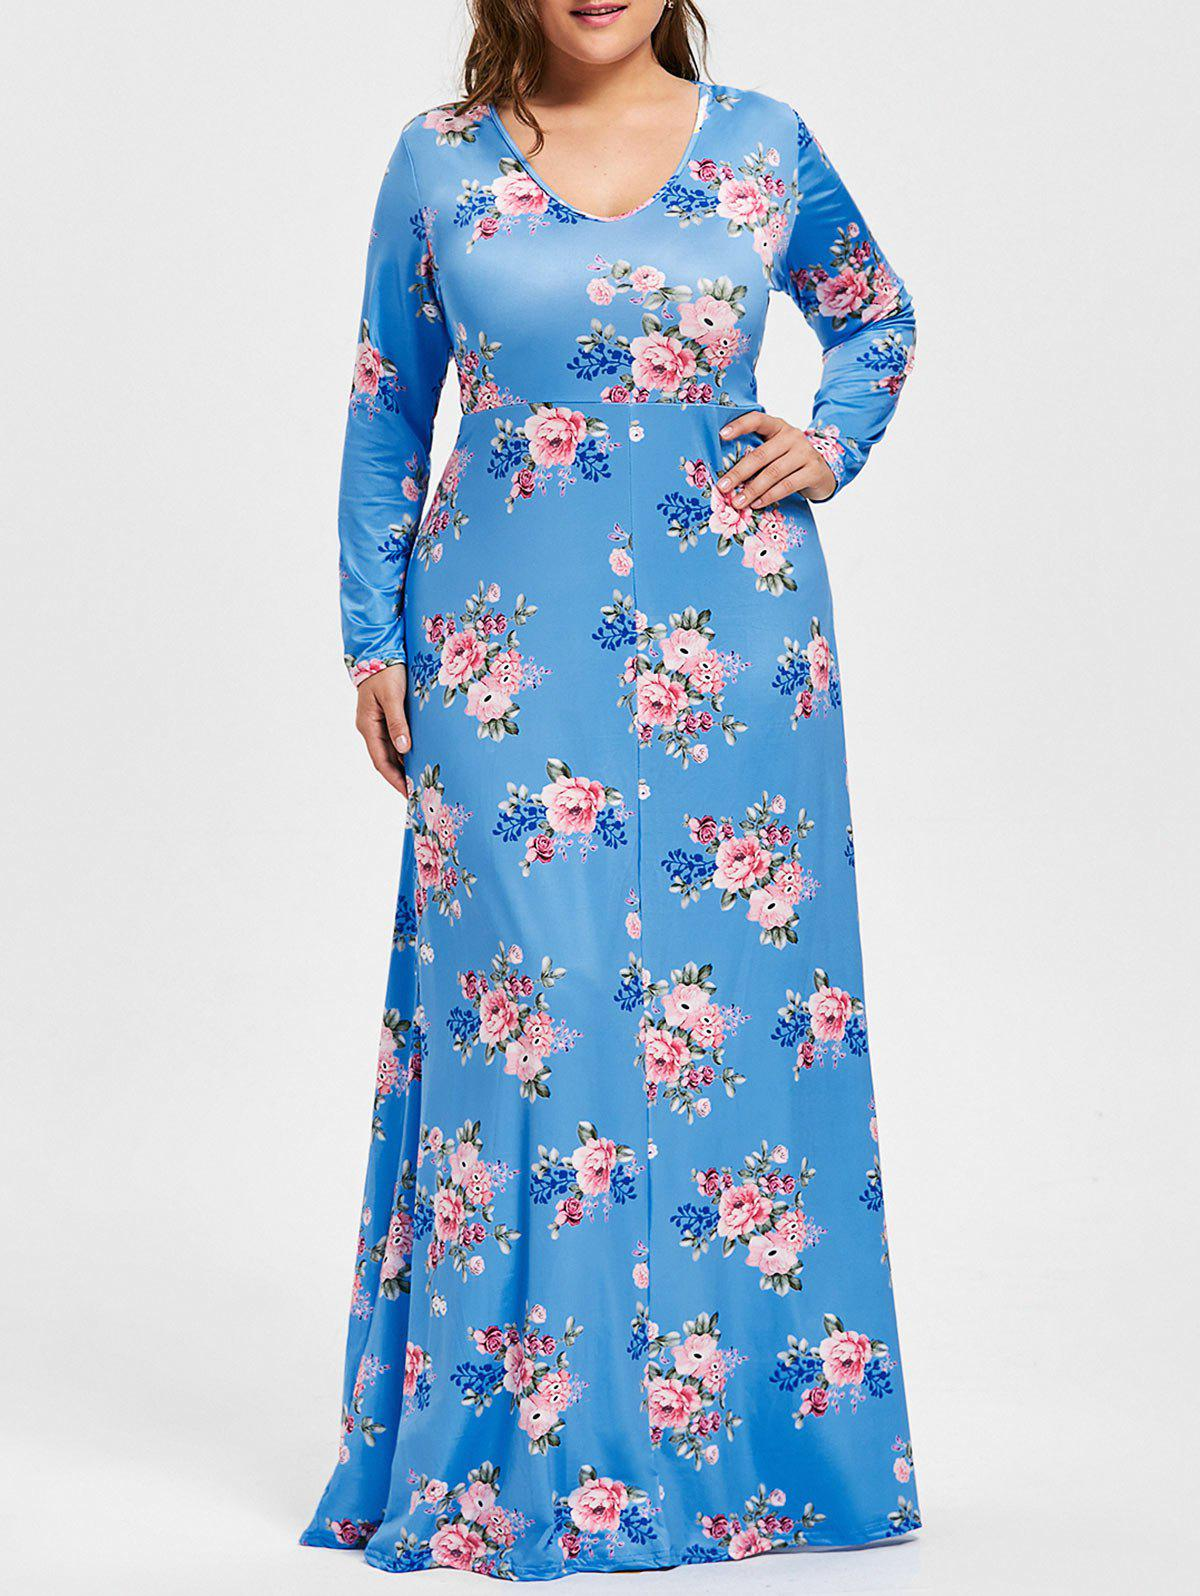 Plus Size Floral Print V Neck Maxi DressWOMEN<br><br>Size: 5XL; Color: AZURE; Style: Casual; Material: Cotton,Polyester; Silhouette: A-Line; Dresses Length: Floor-Length; Neckline: V-Neck; Sleeve Length: Long Sleeves; Pattern Type: Floral; With Belt: No; Season: Fall; Weight: 0.4900kg; Package Contents: 1 x Dress;